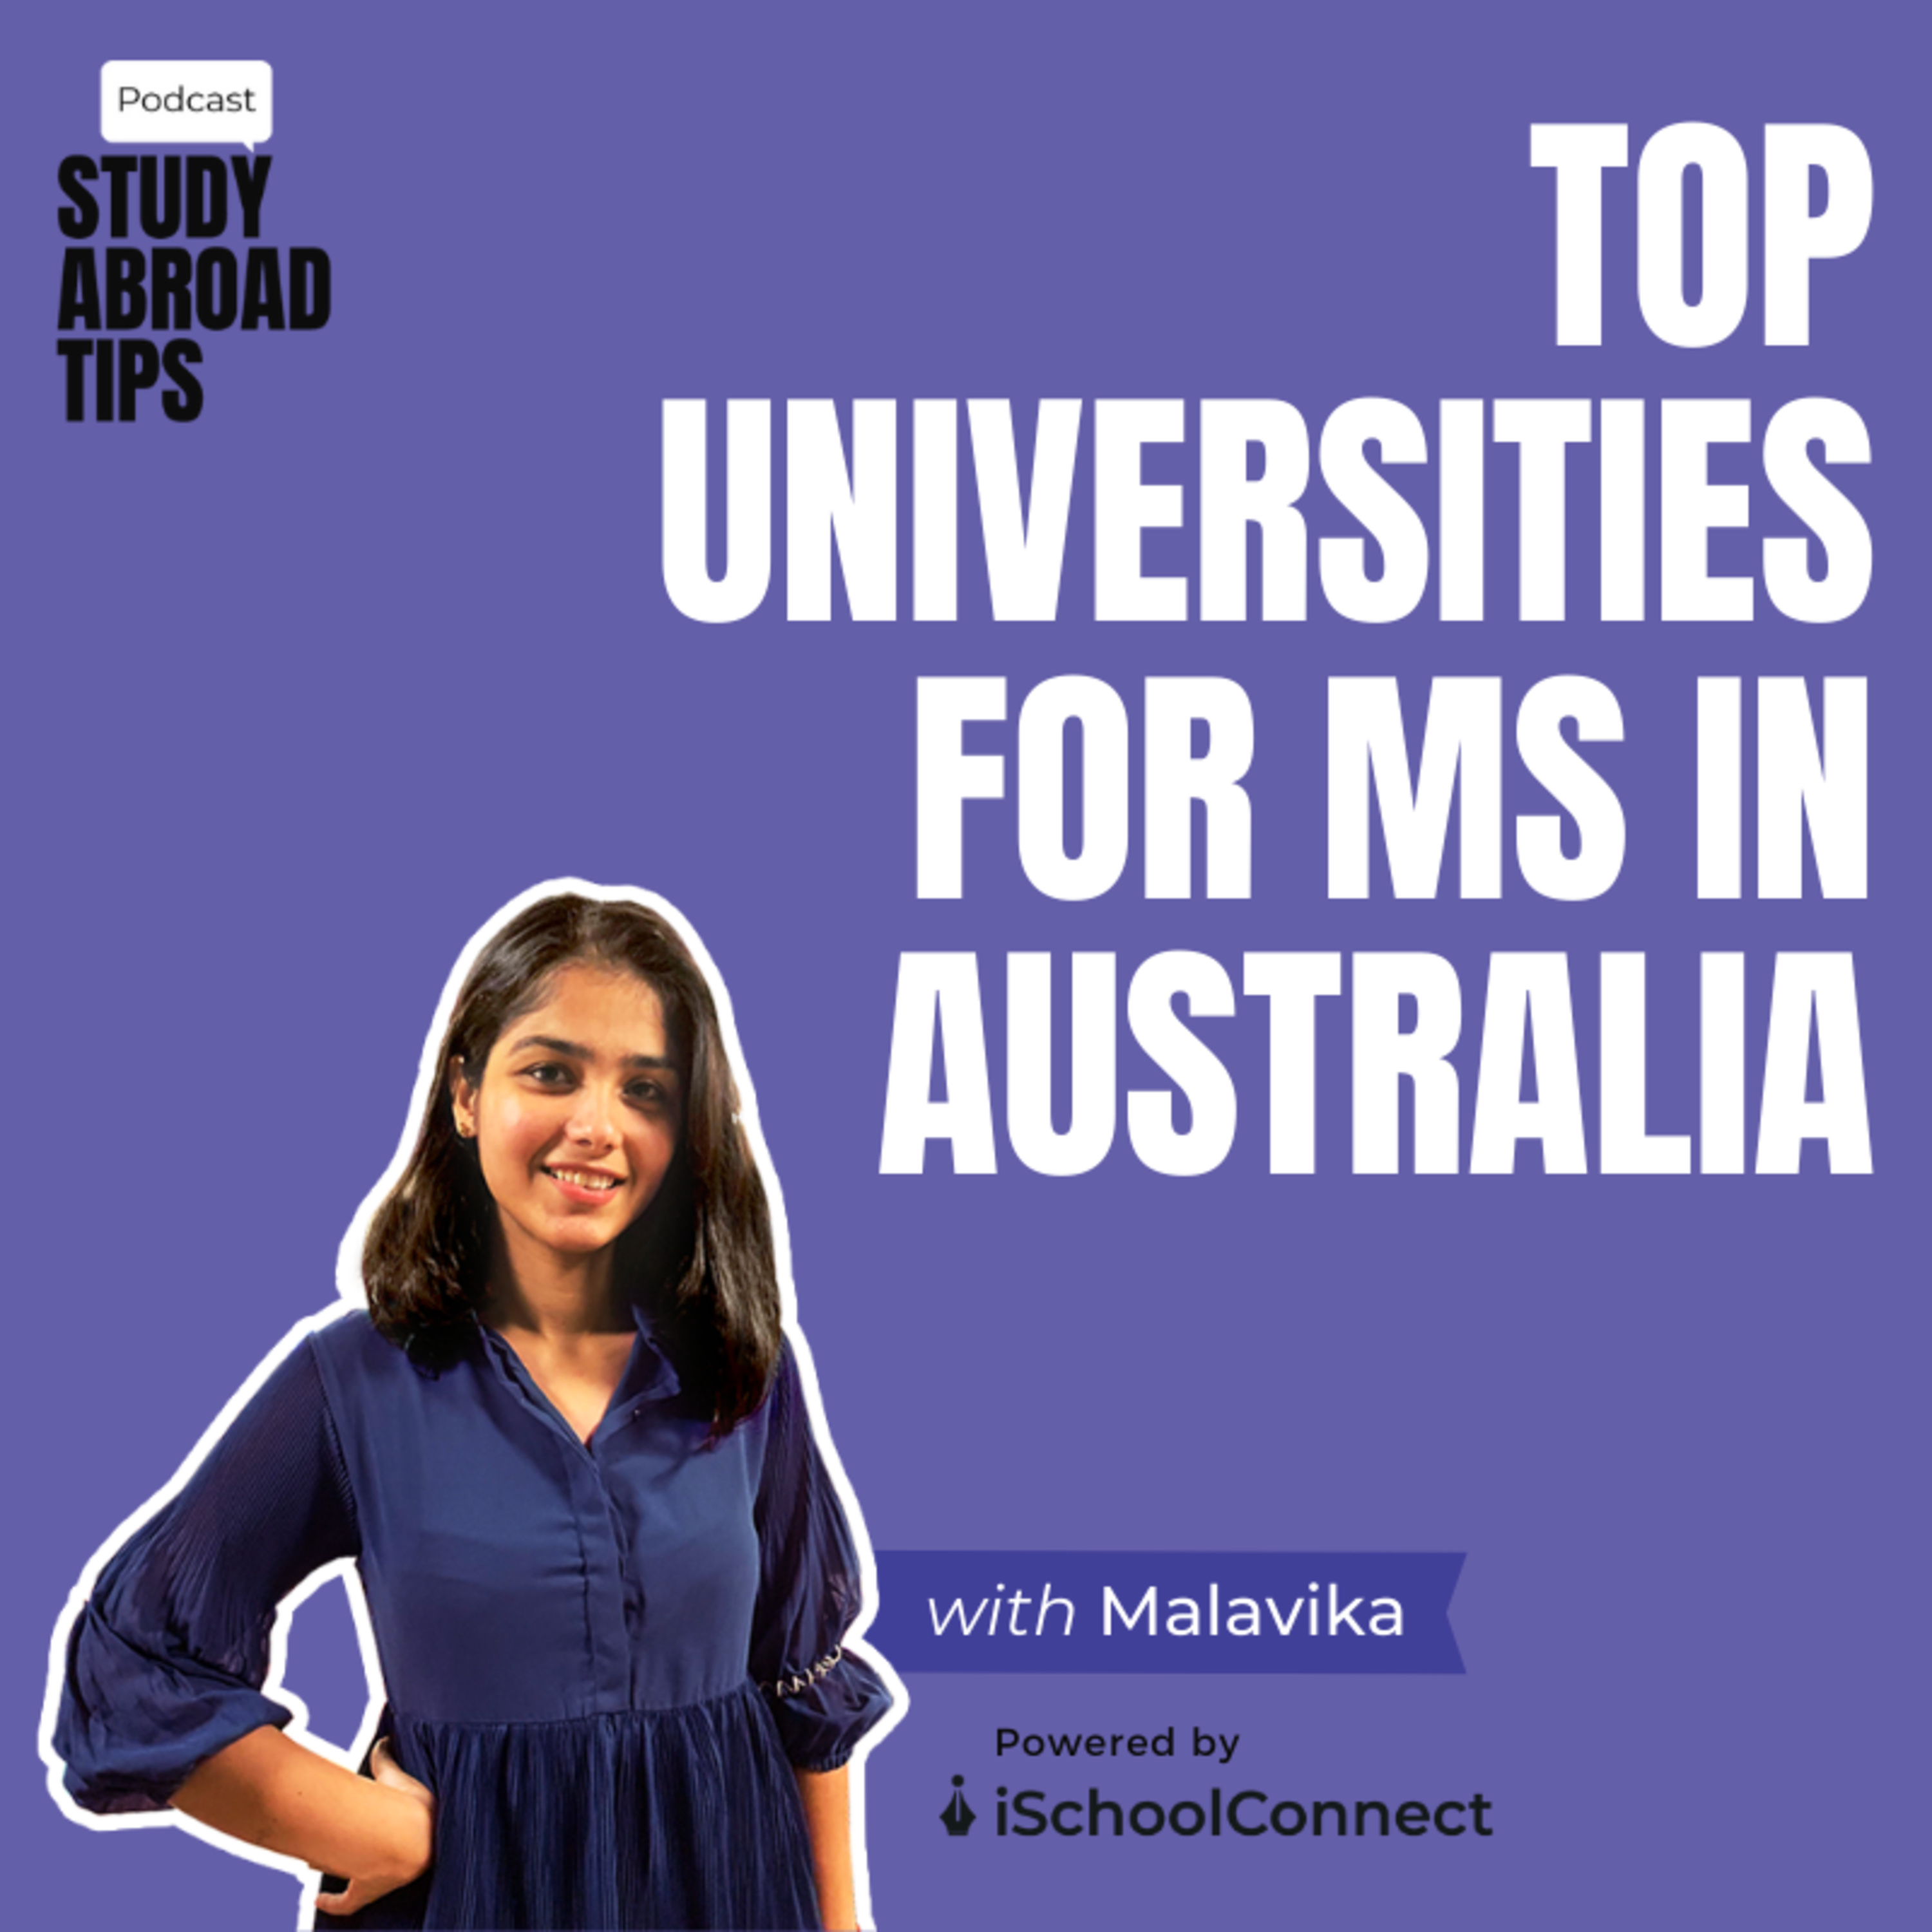 Top universities for MS in Australia | Courses, Fees, rankings | iSchoolConnect